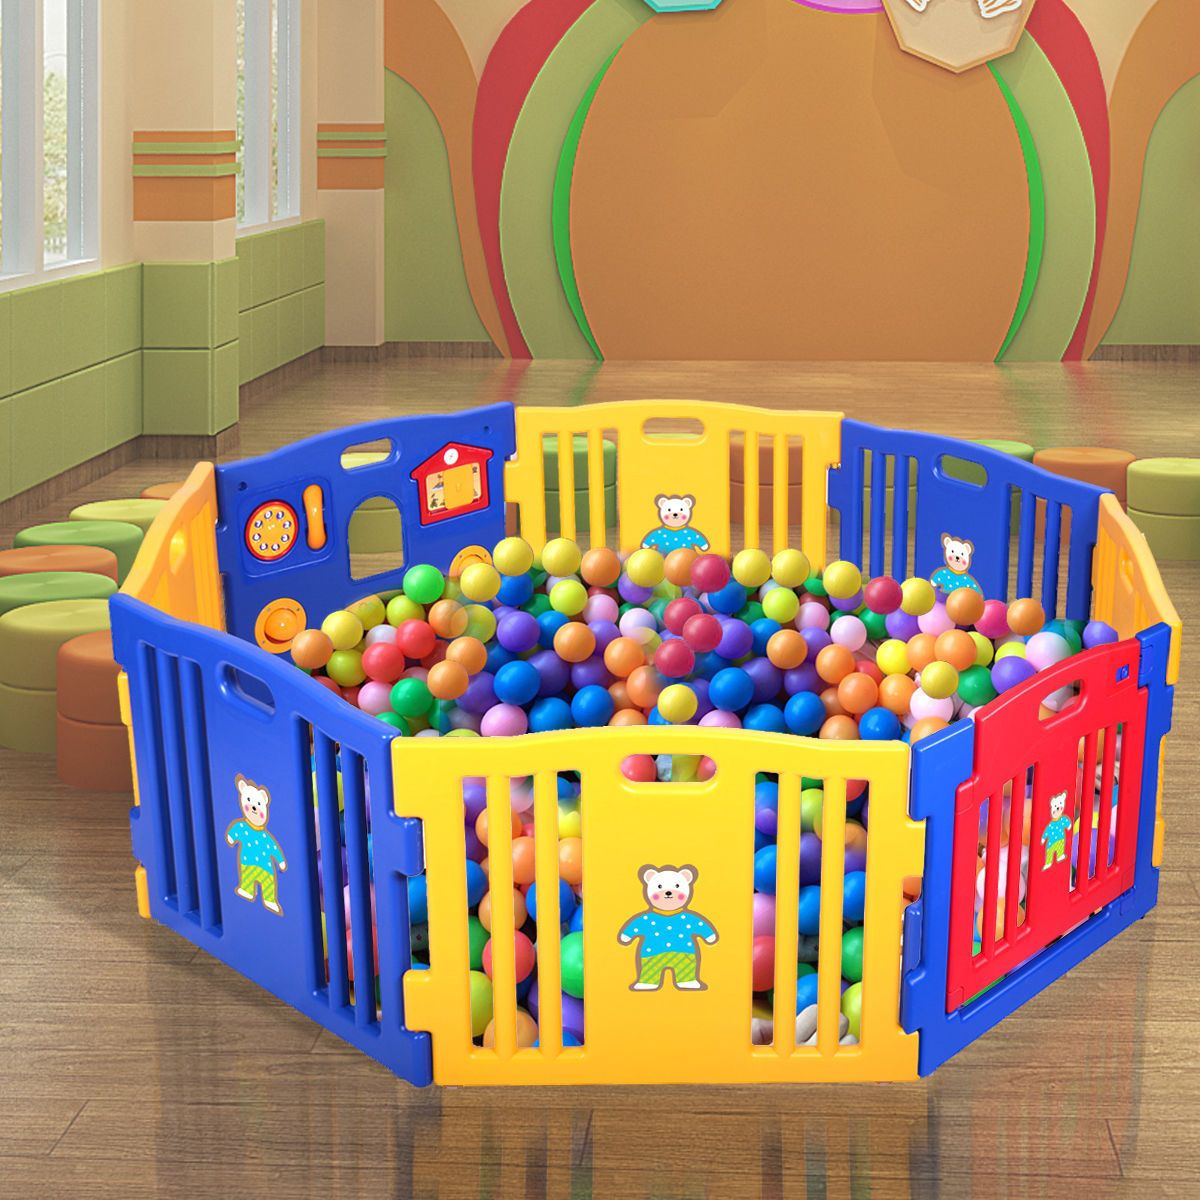 Toys for kids 8 and up  New Pen Baby Playpen Kids  Panel Safety Play Center Yard Home